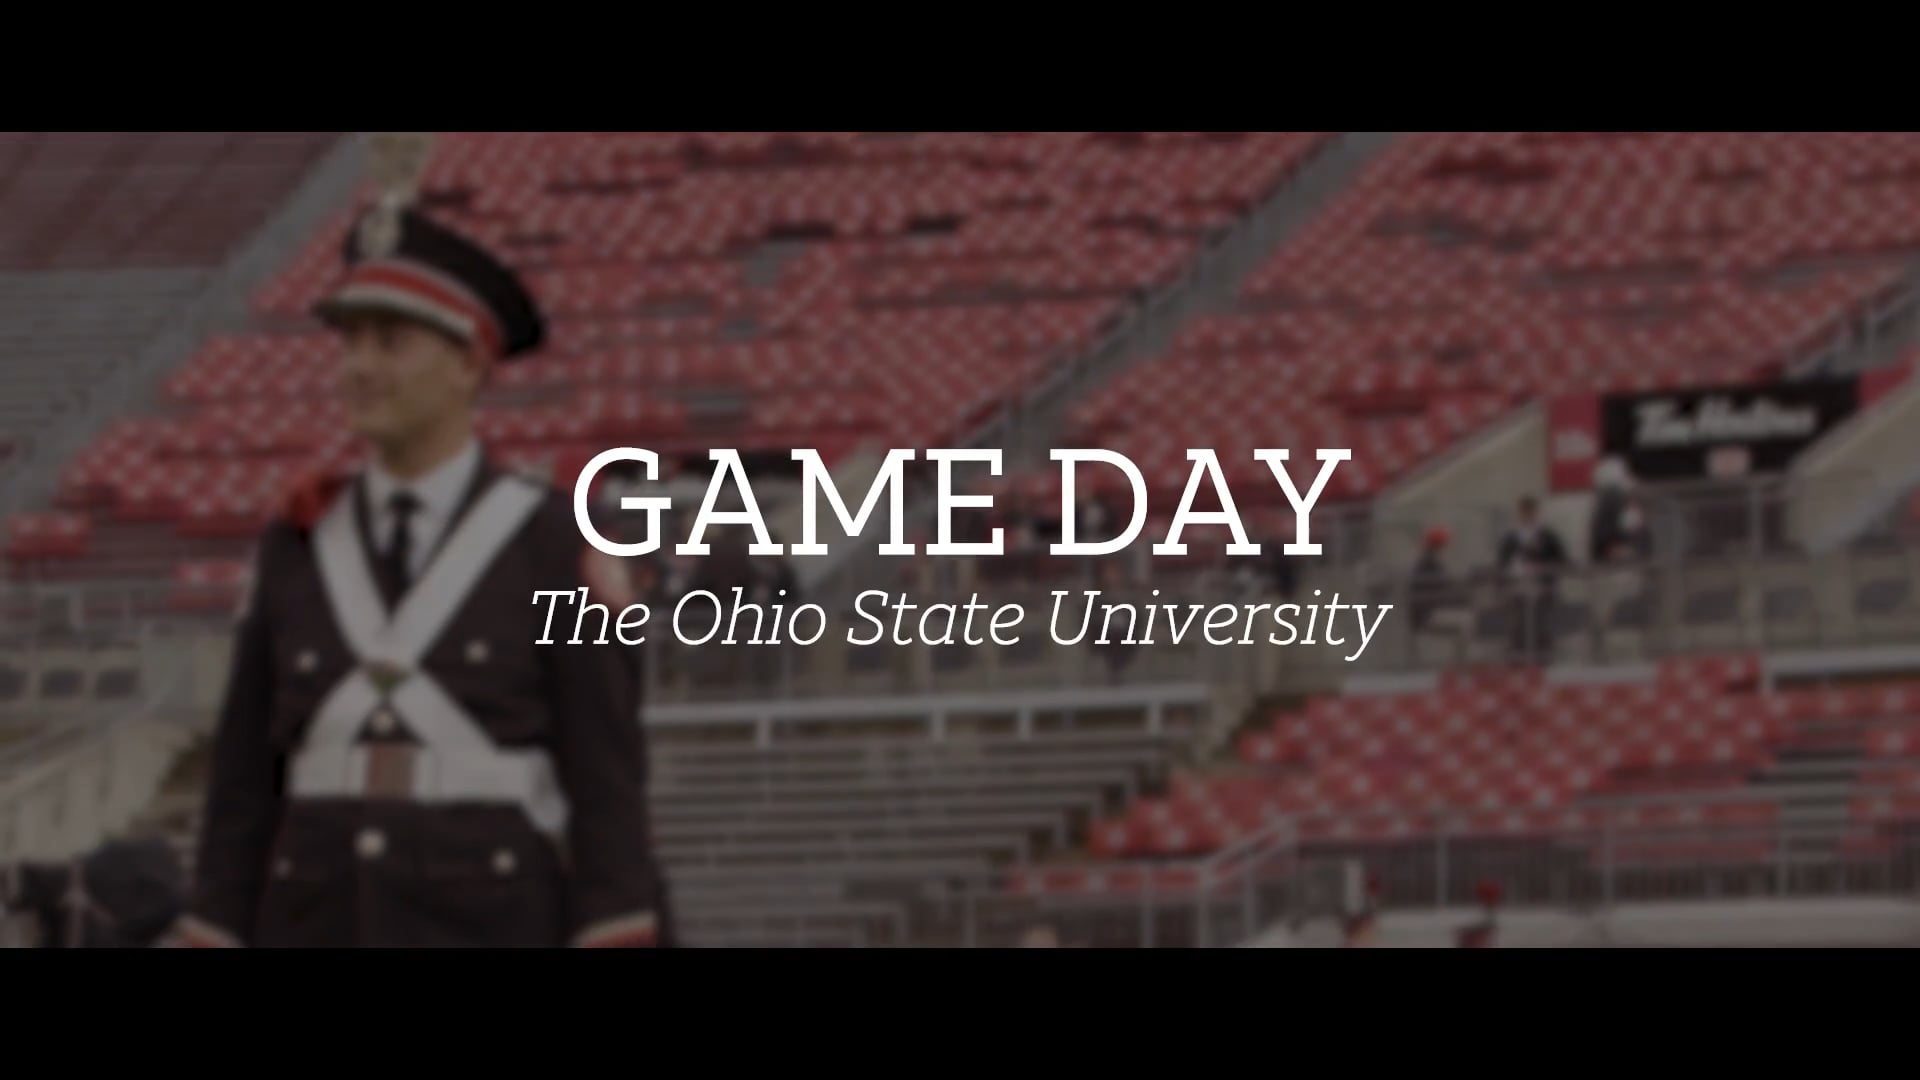 """AT&T - """"Game Day at Ohio State"""""""